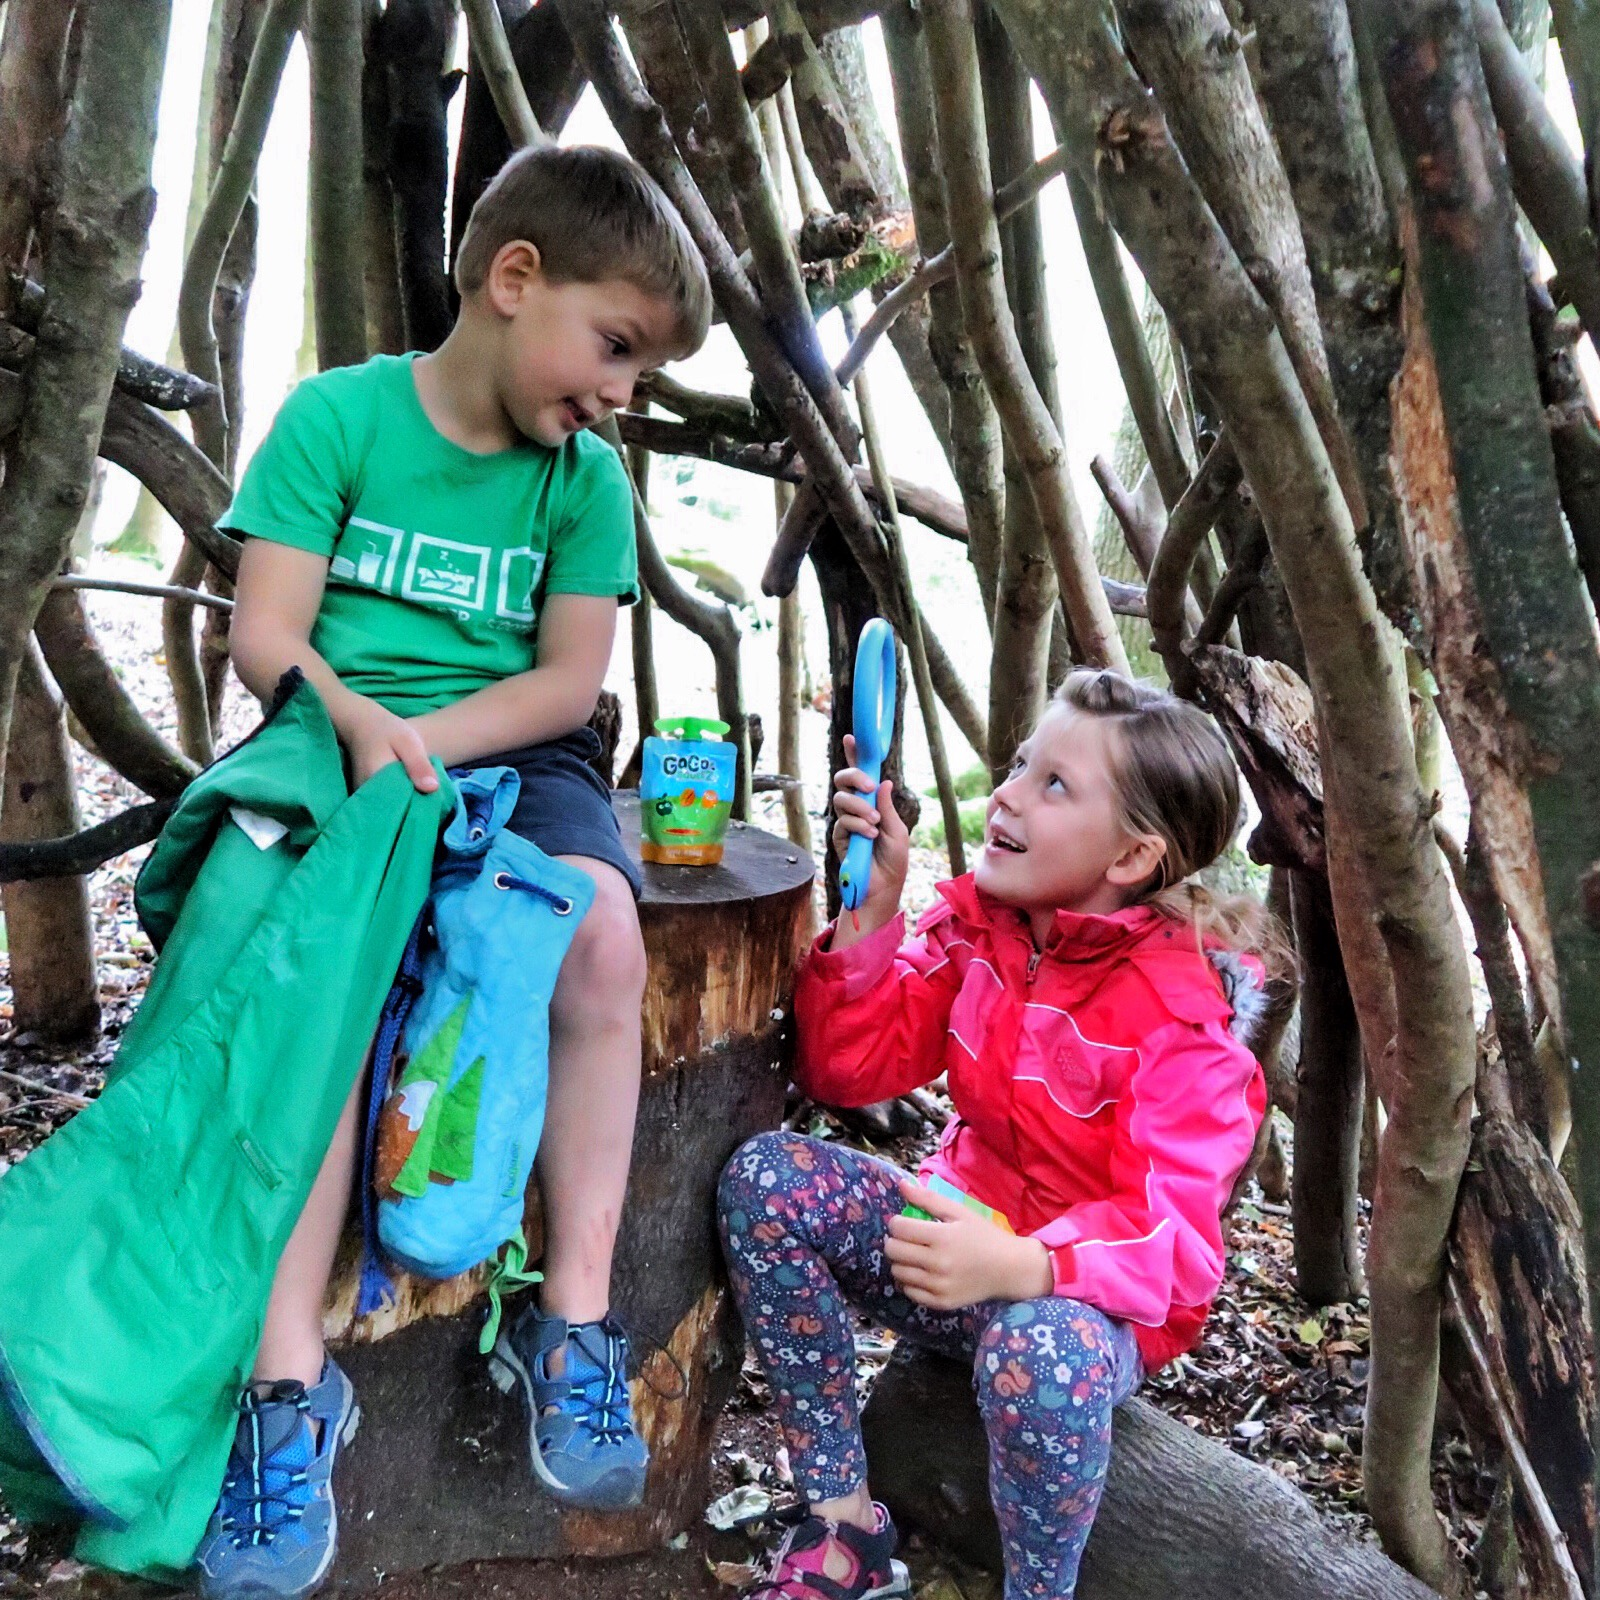 The children sitting in a stick den looking at each other through a magnifying glass with a packet of GoGo SqueeZ next to them.